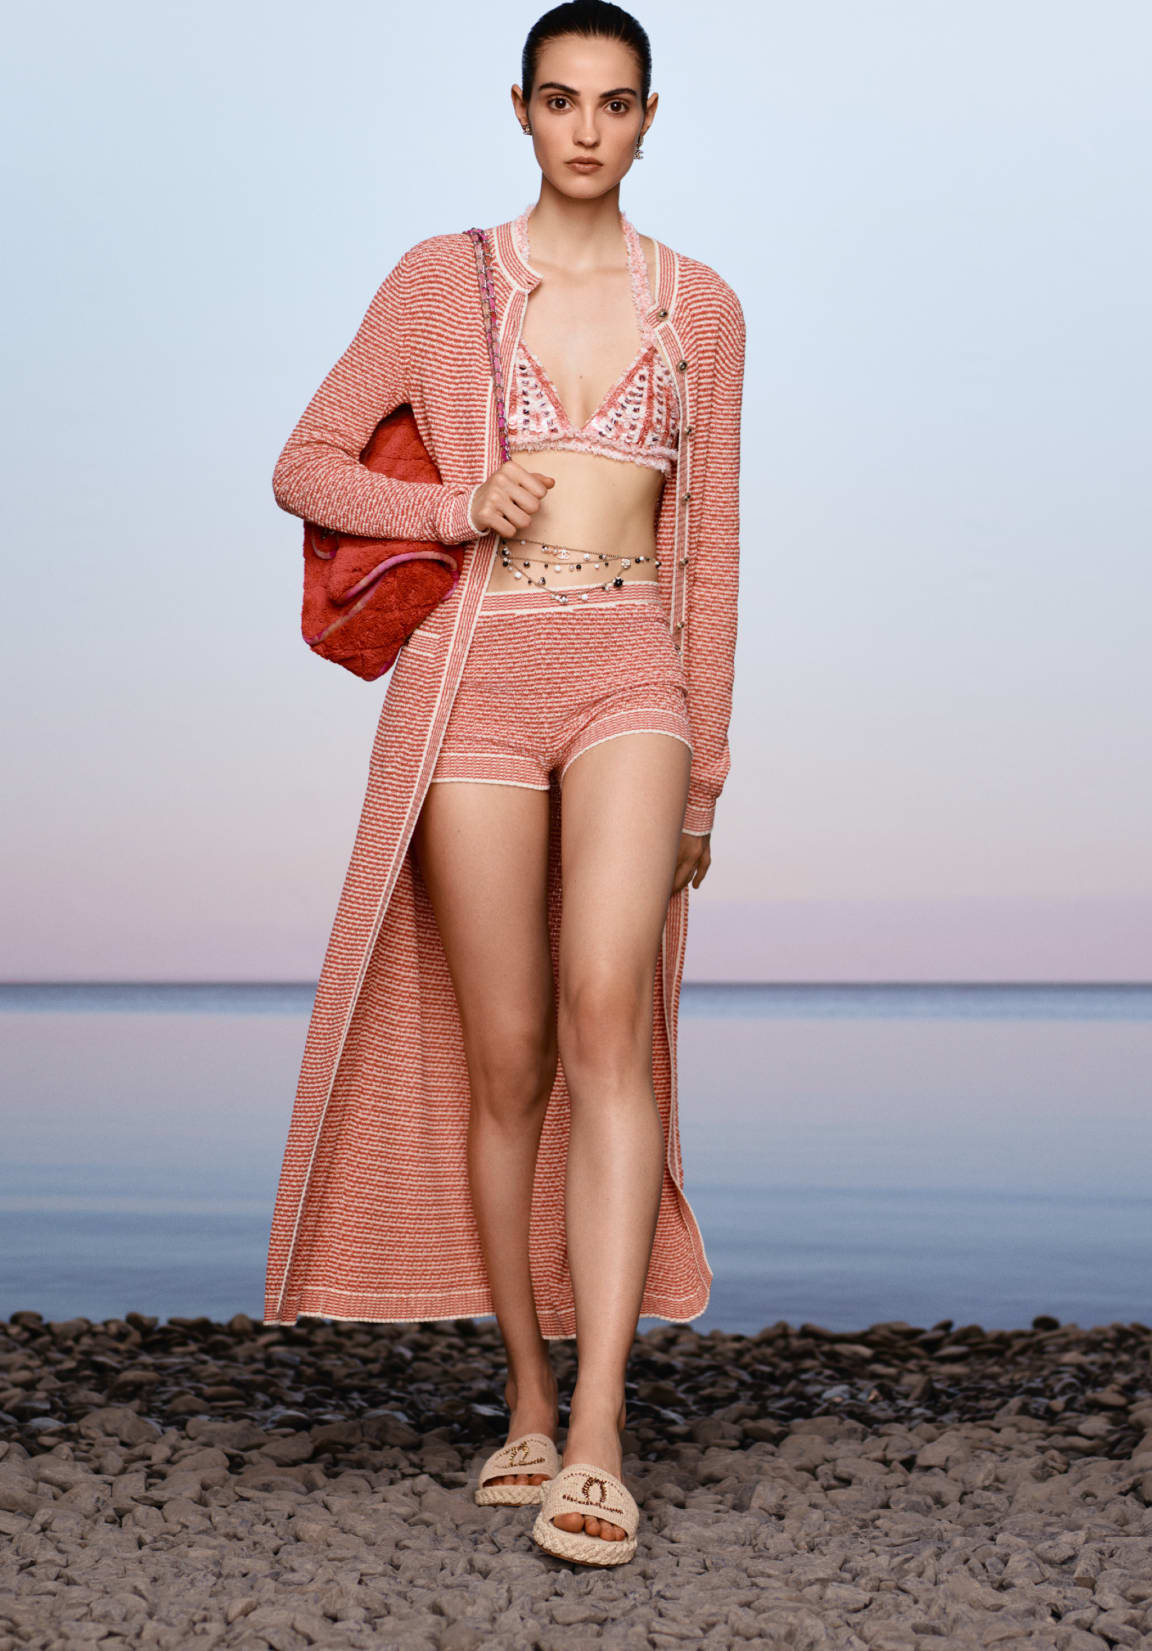 zoom - Image 1 - Look 19